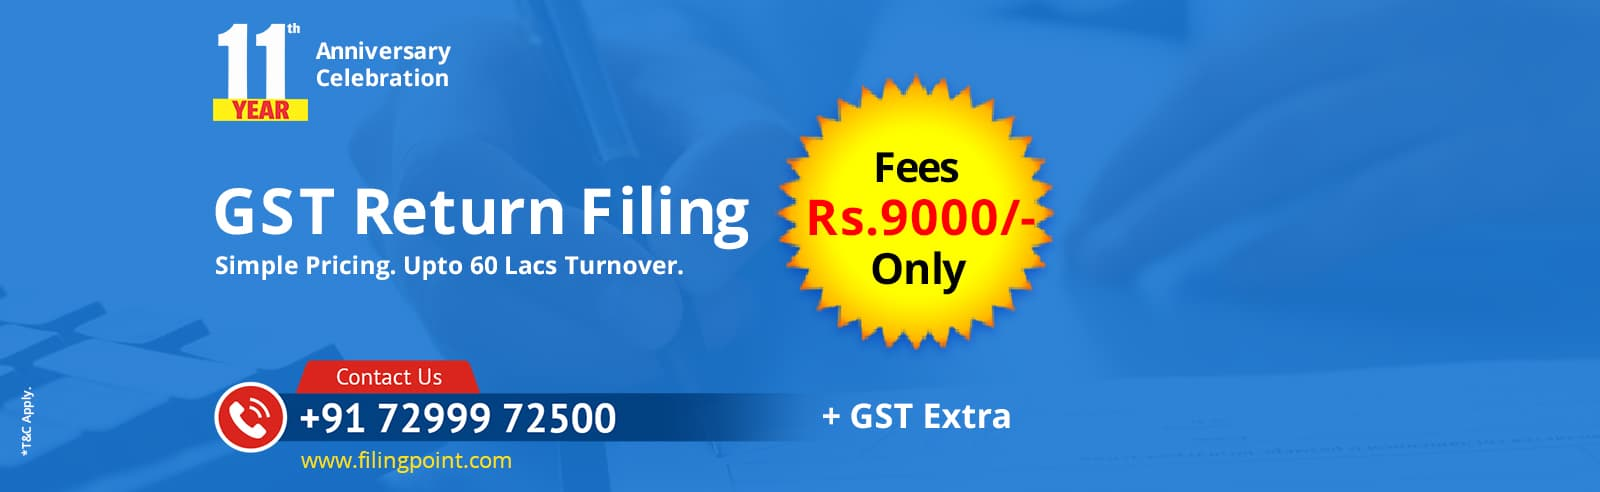 GST Filing Services Near Me Chennai Lakshmi Talkies Road Aminjikarai Shenoy Nagar (East)